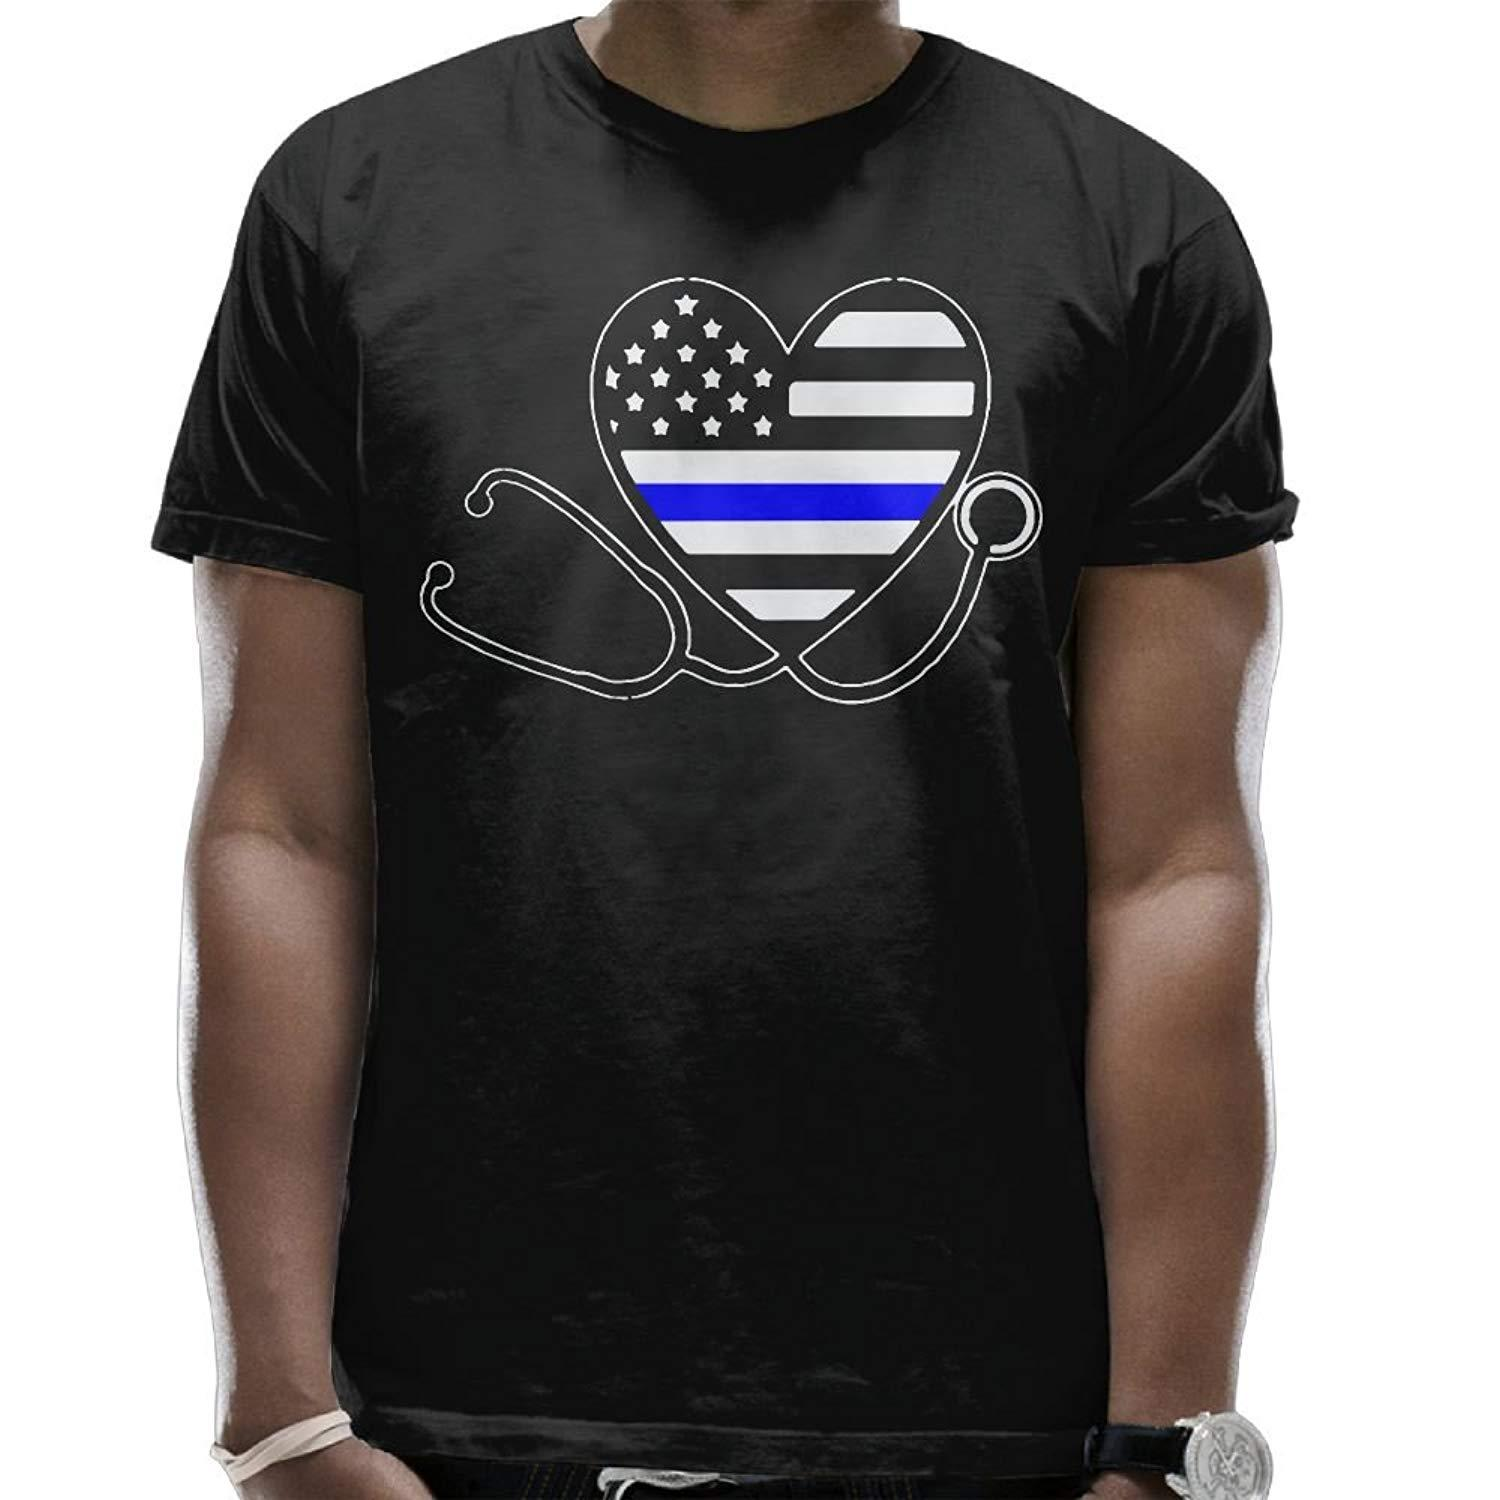 0d2f379c Summer Custom Crew Neck Short Sleeve T Shirt Thin Blue Line Nurse  Stethoscope Nurses Support Cotton T Shirt For Mens Silly T Shirts  Interesting T Shirts ...